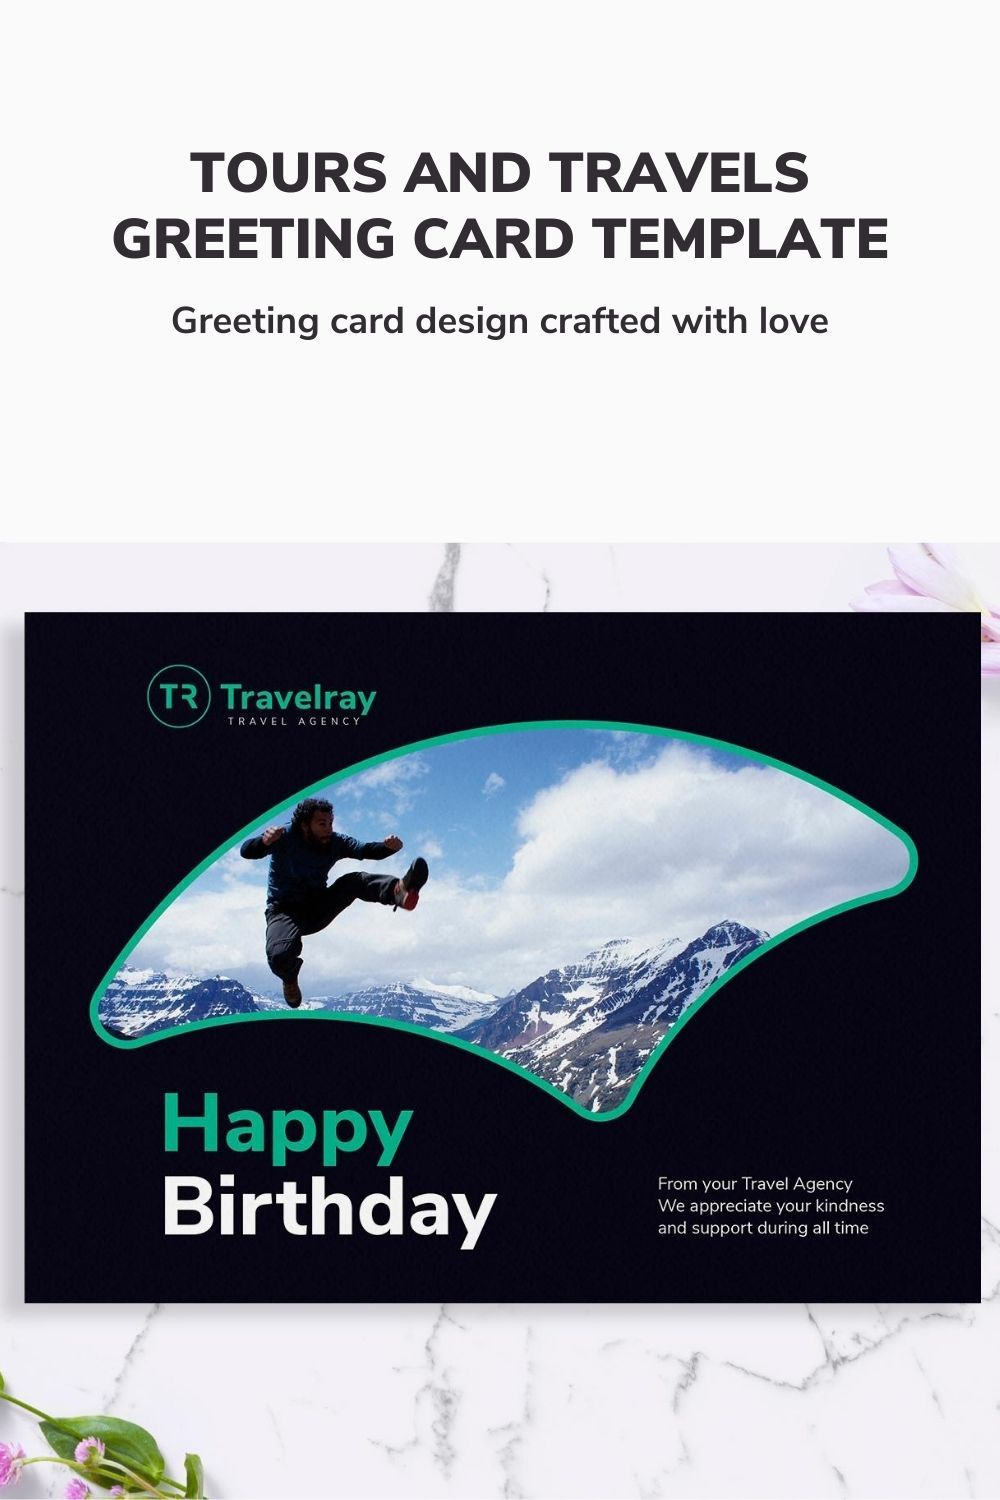 Tours And Travels Greeting Card Template Design In 2020 Greeting Card Template Card Template Travel Graphic Design